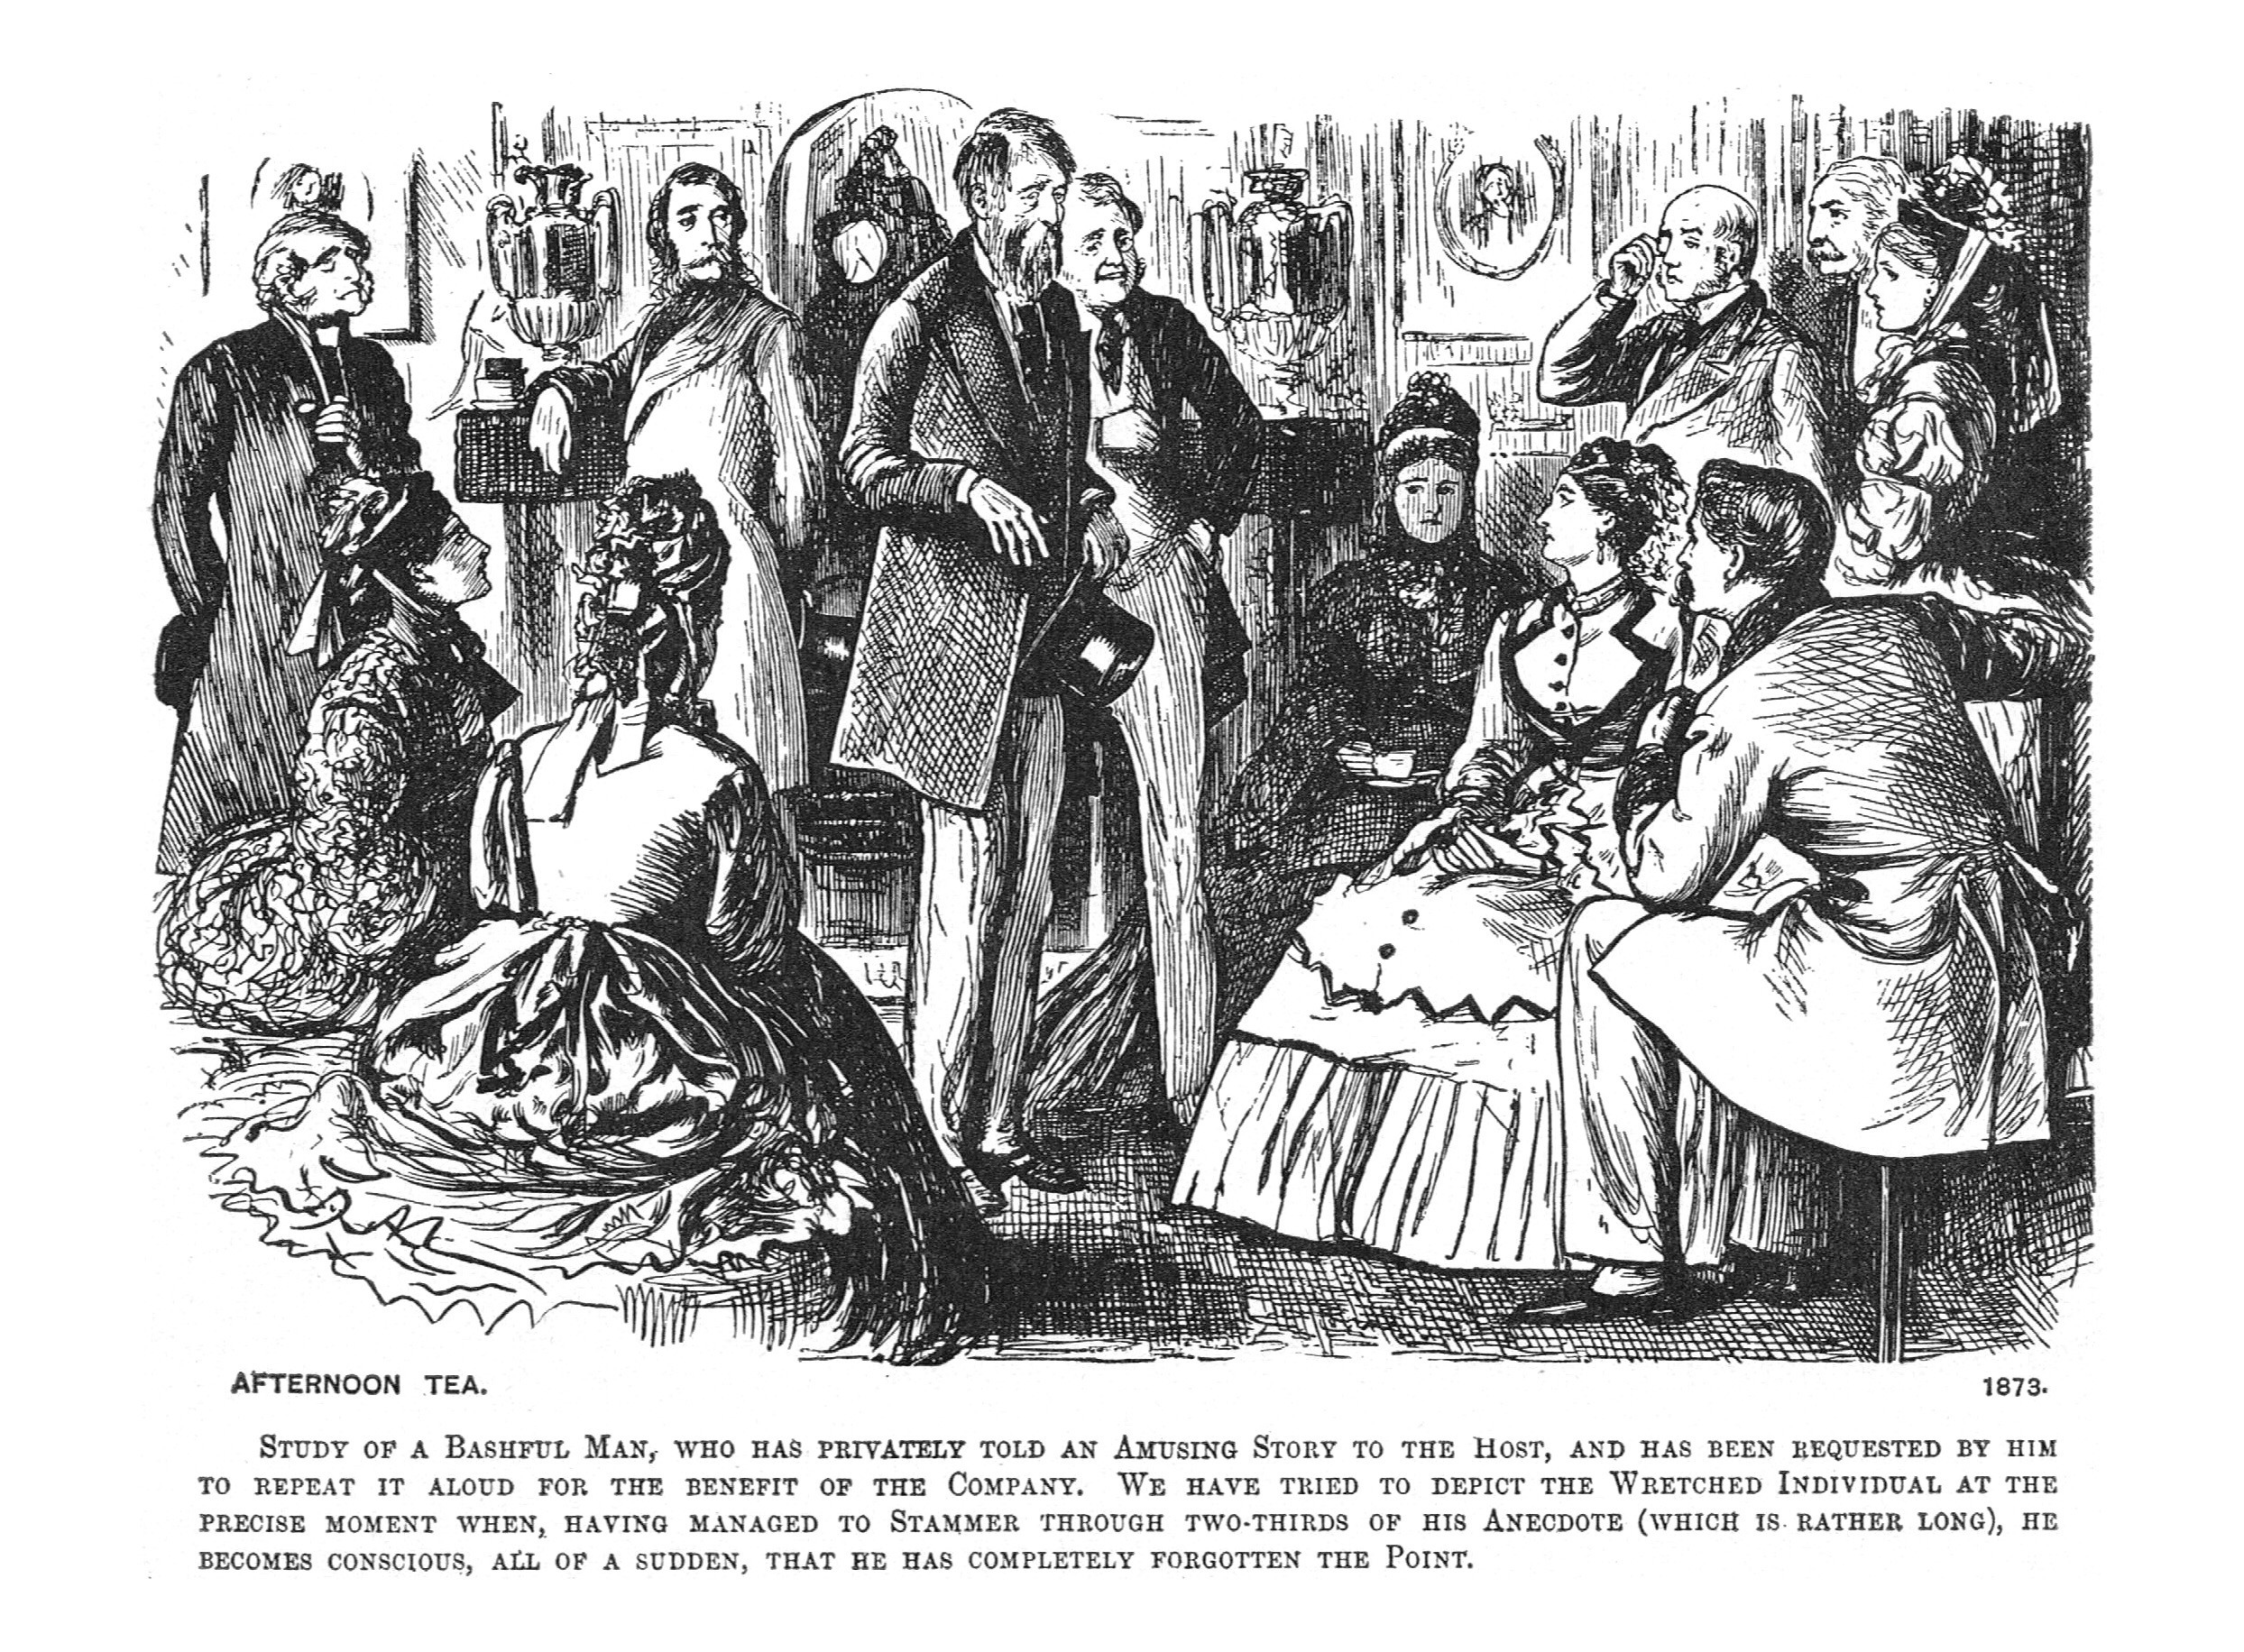 Du Maurier, Society Pictures, 1895, 01 Afternoon Tea 1873.jpg